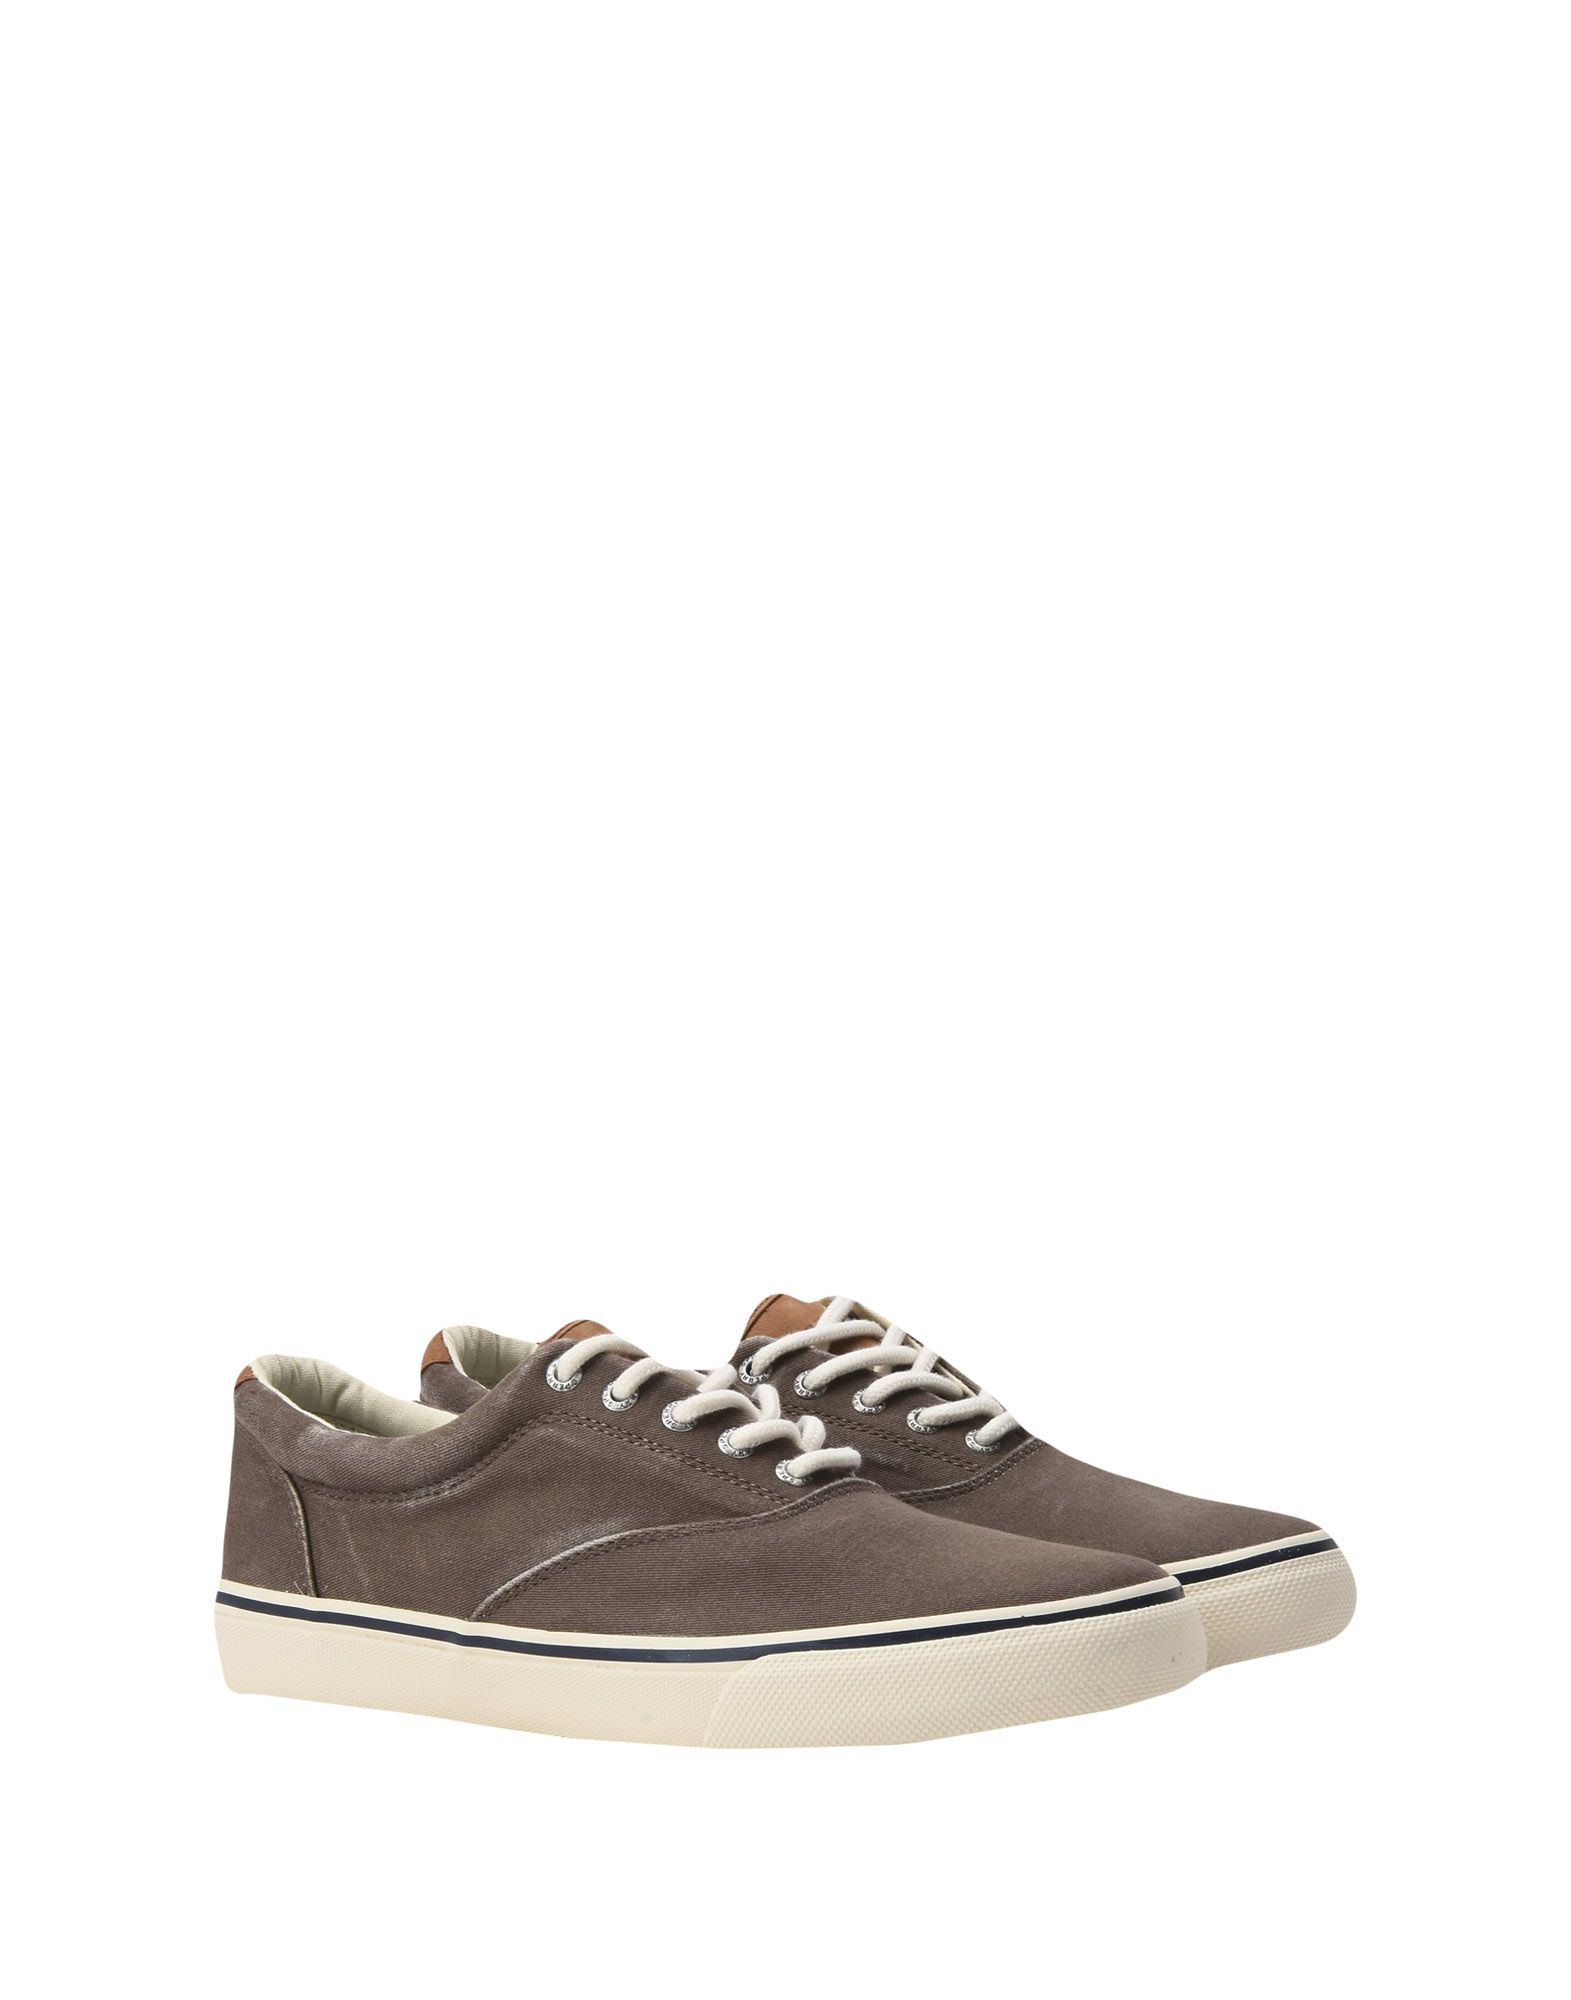 Rabatt echte Schuhe Sperry Top Top Sperry 11221073GD cfa00d